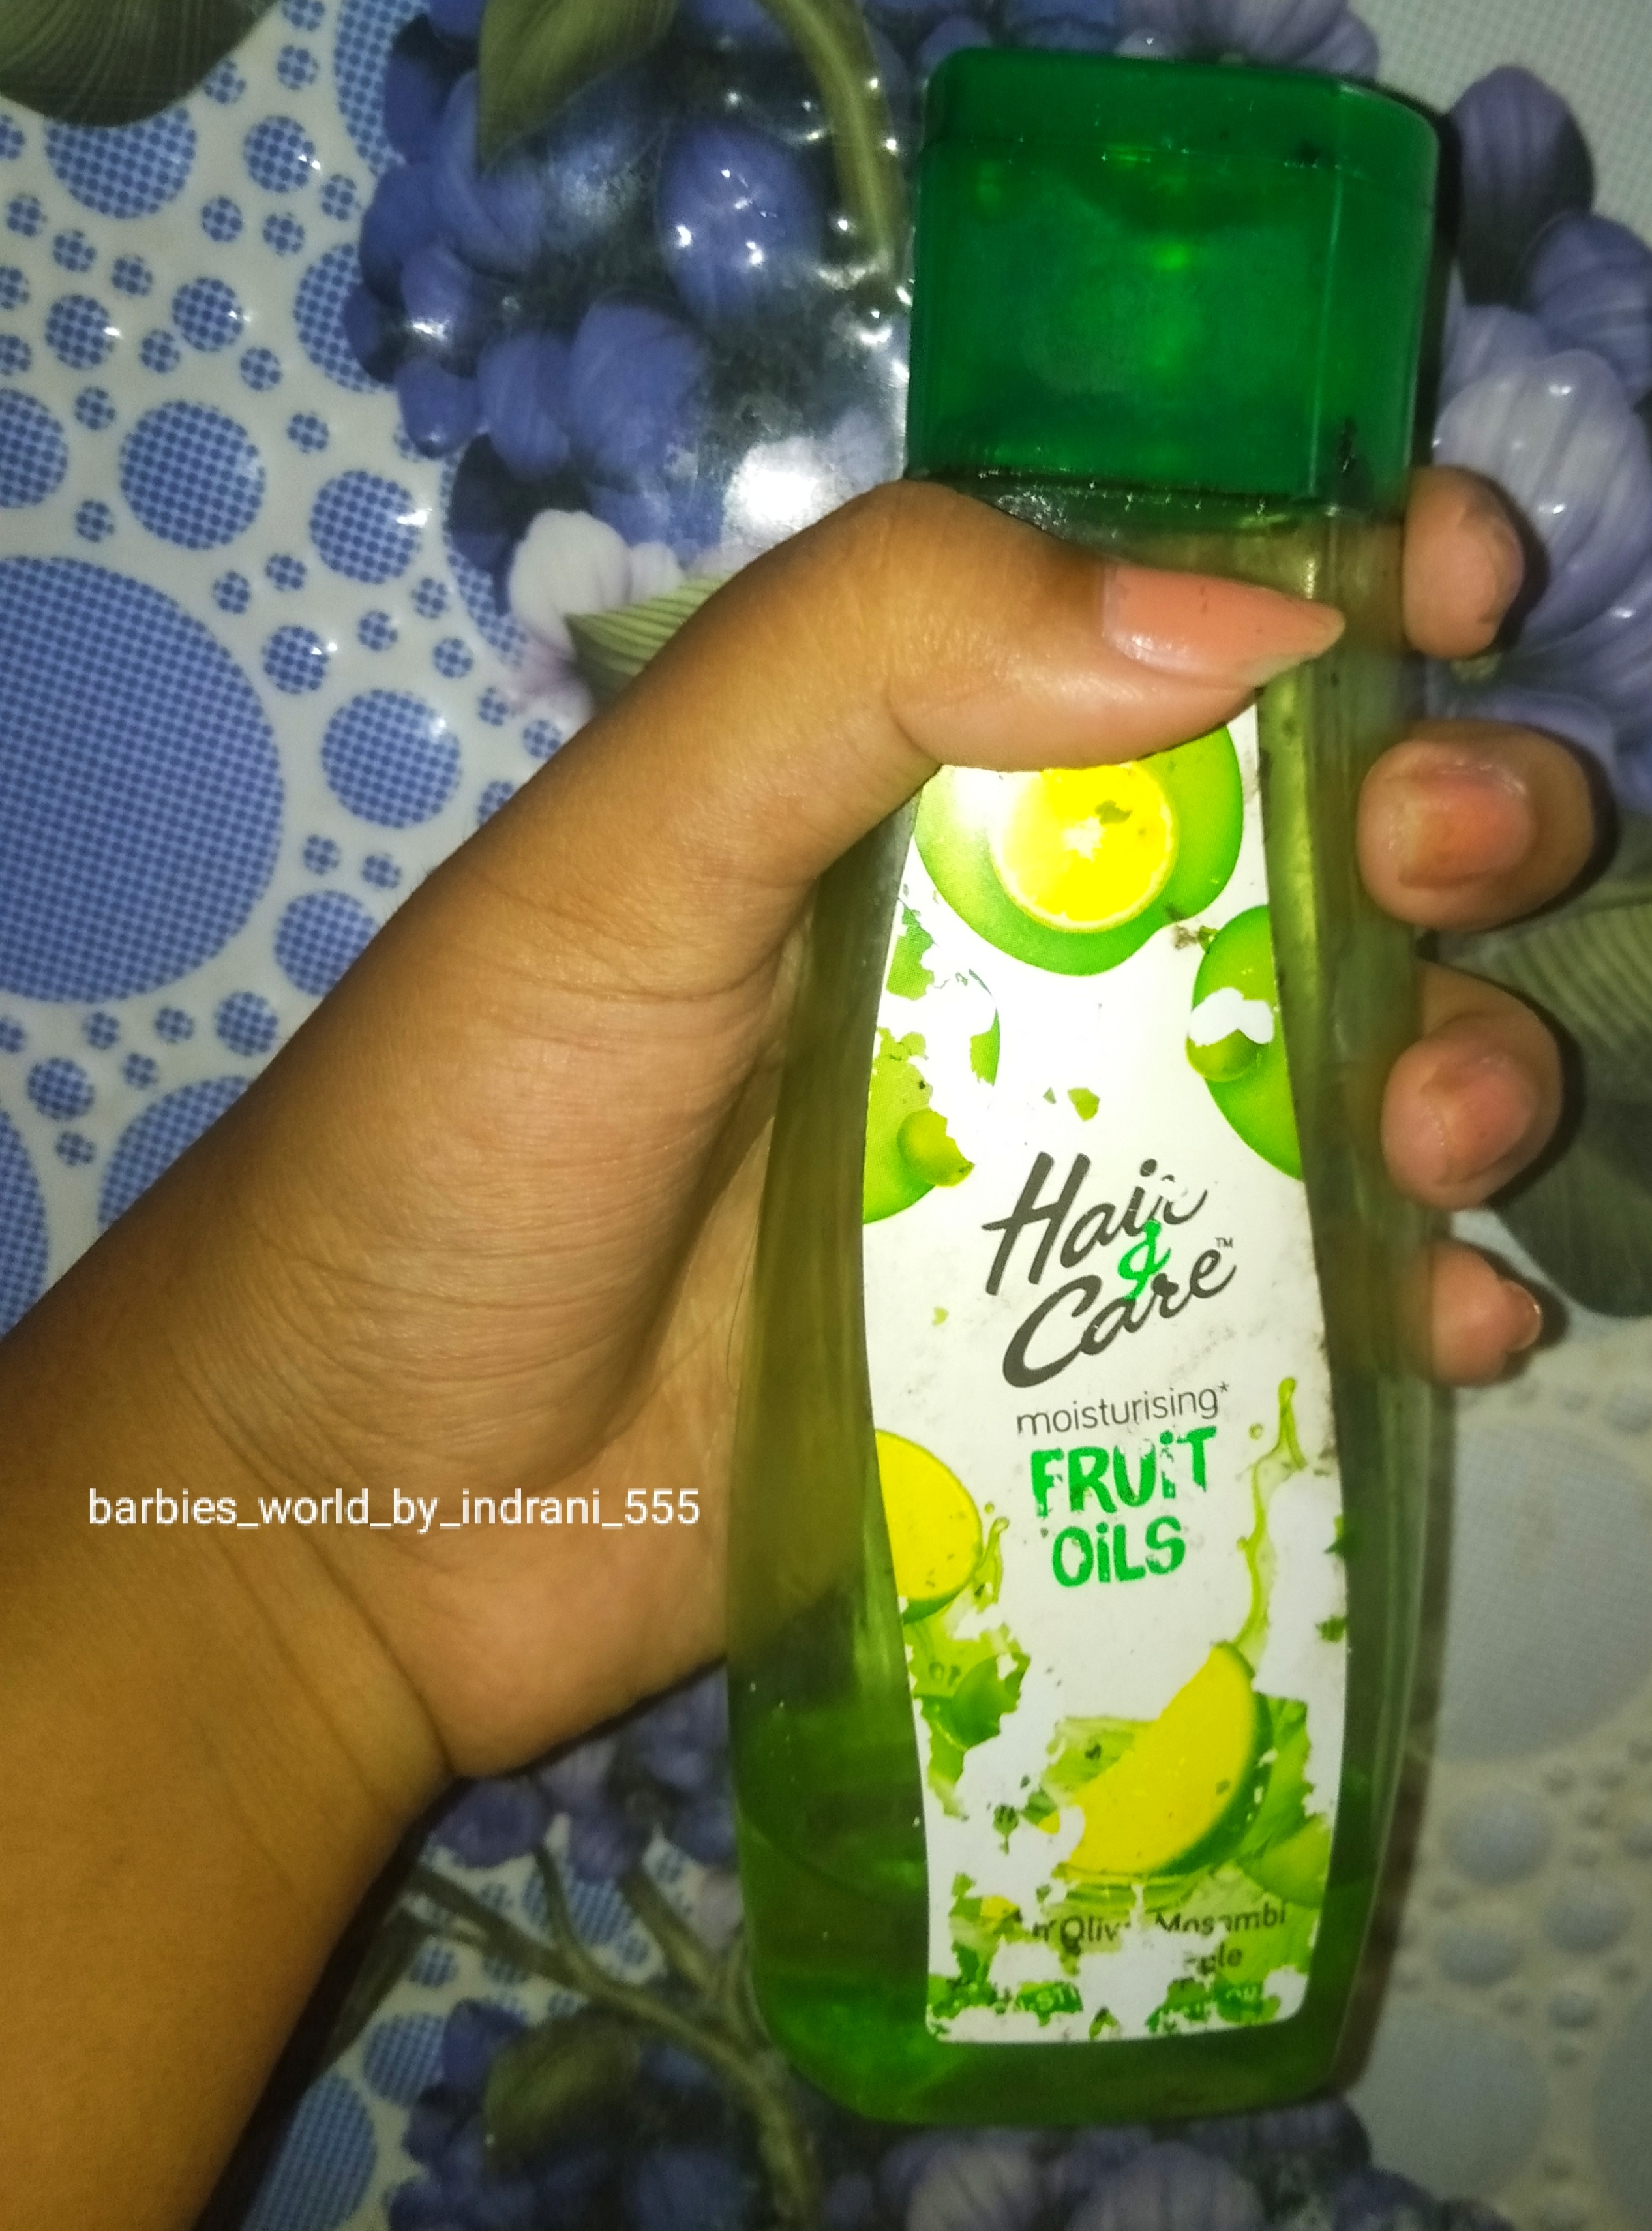 Hair & Care Fruit Oils Green-Best Light Weight hair oil-By indranireviews